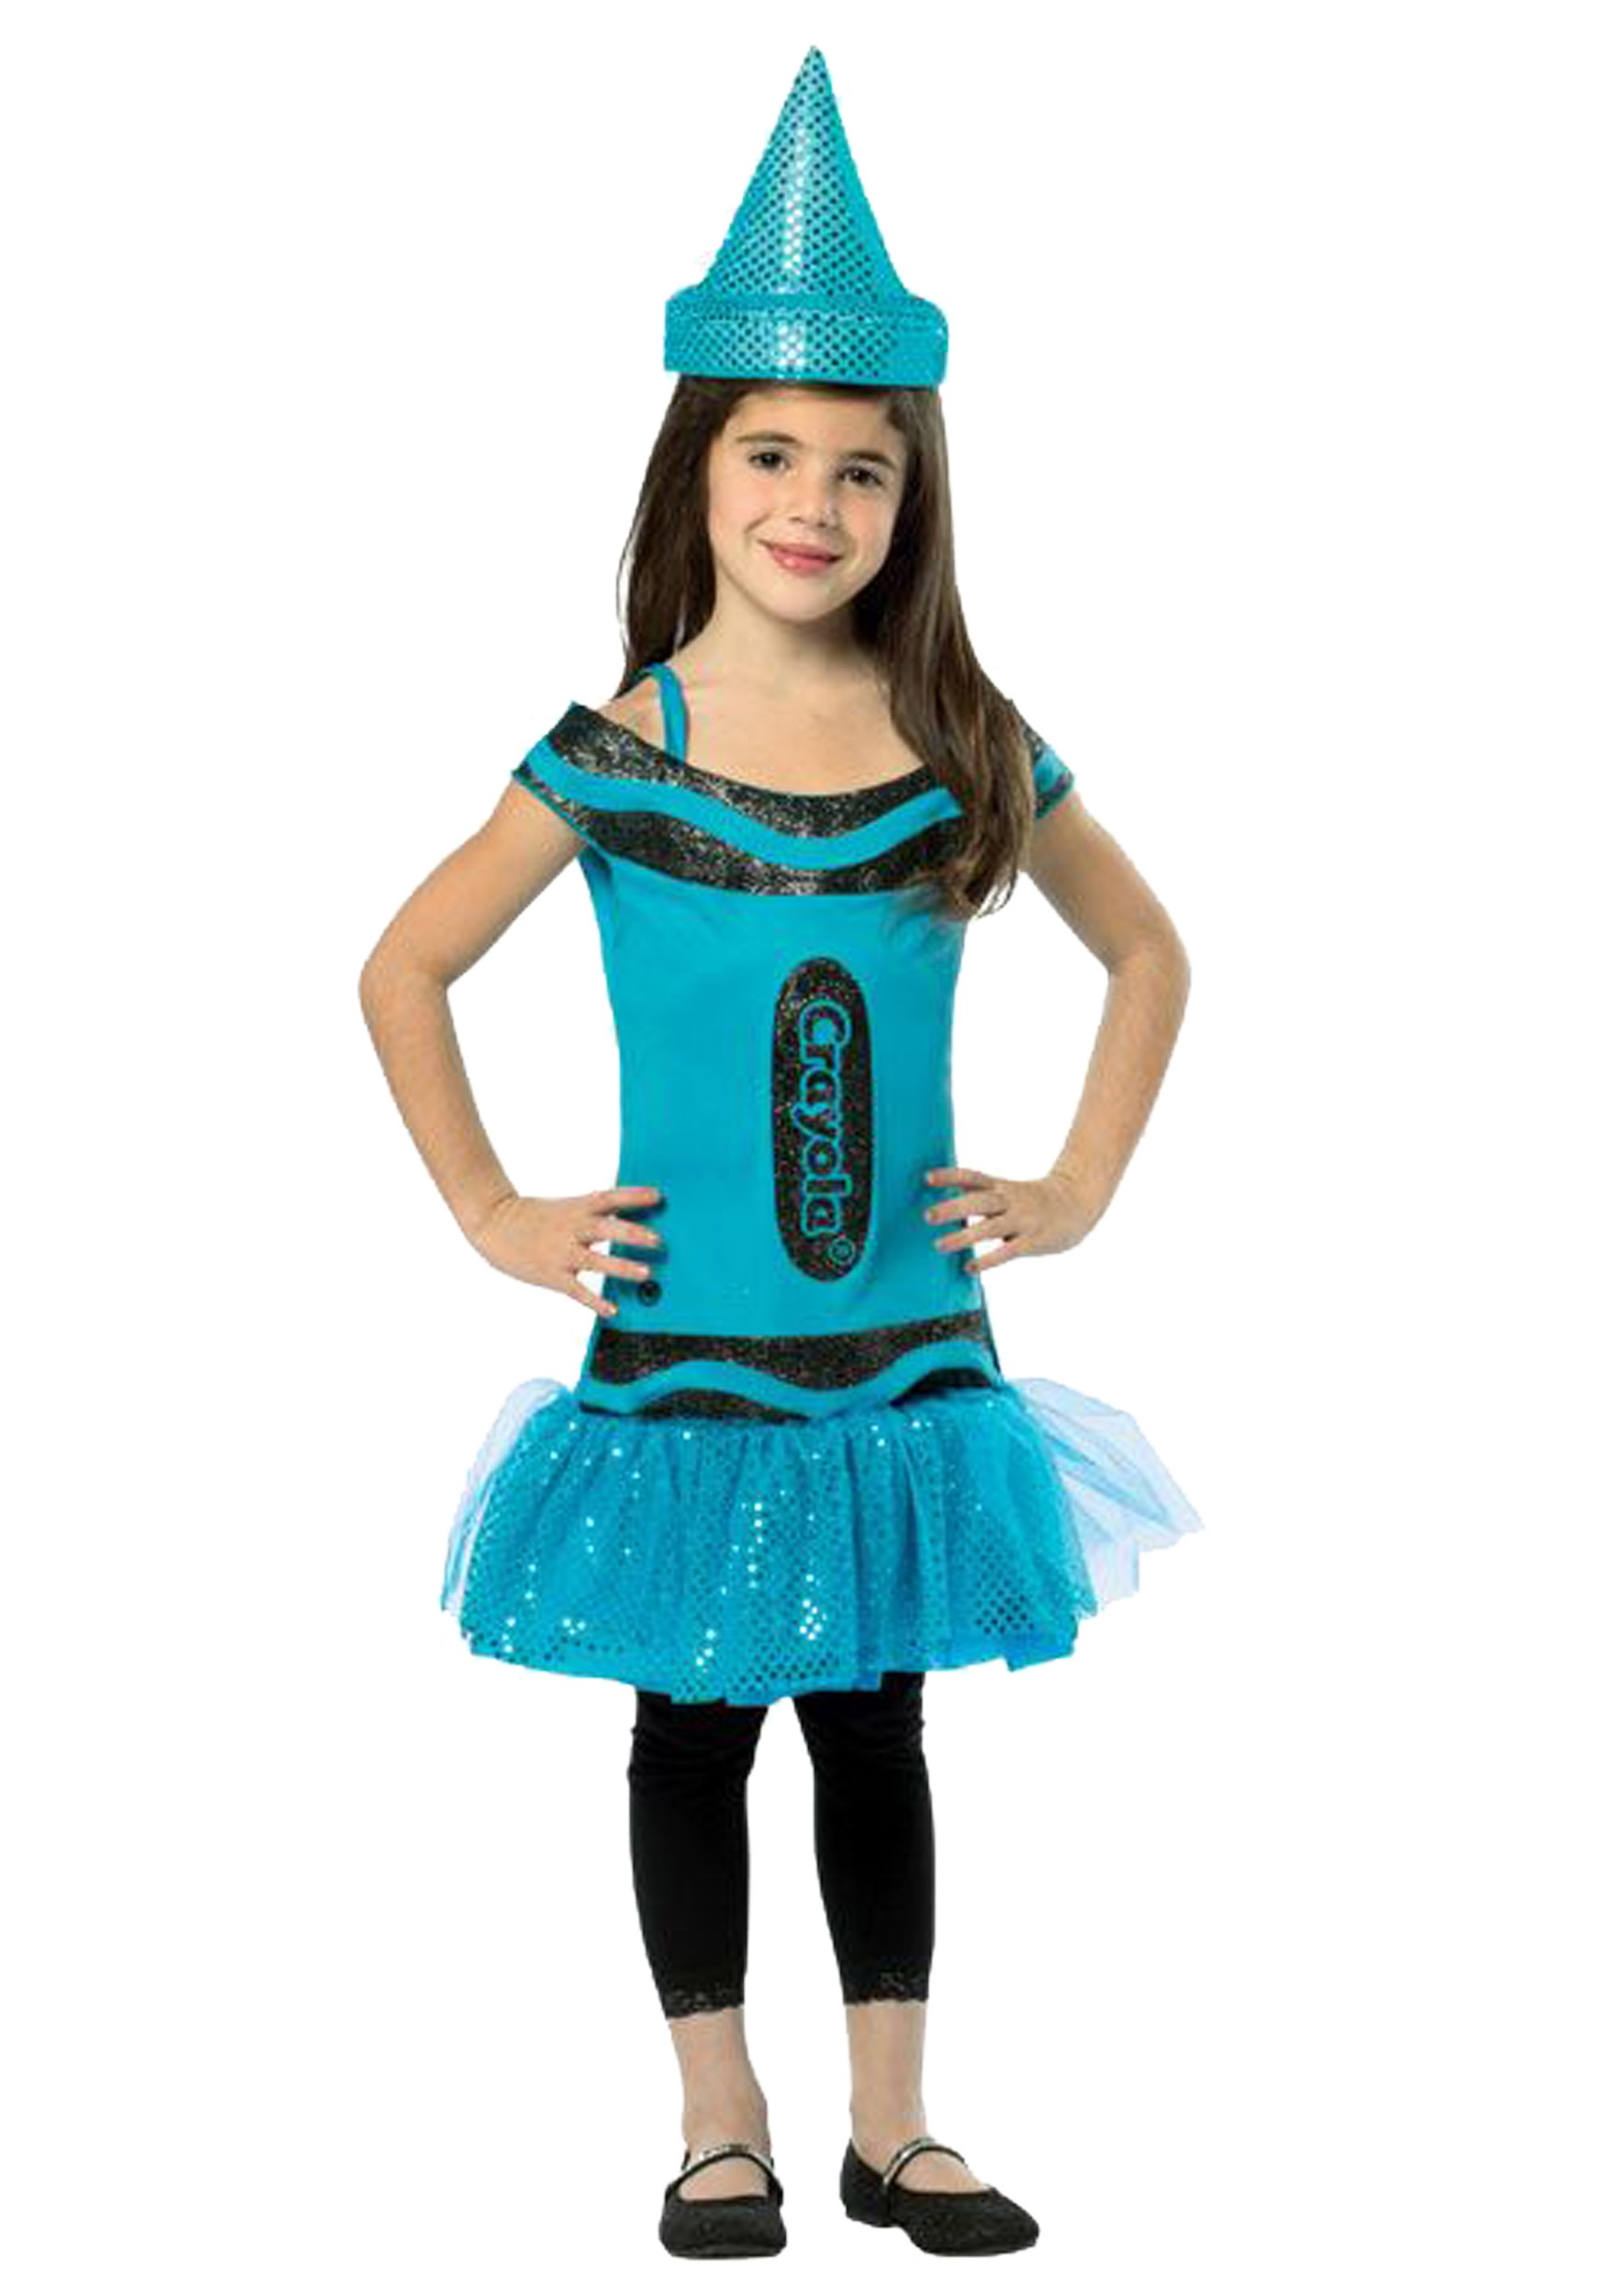 Child Crayola Glitz Blue Dress  sc 1 st  Halloween Costumes & Child Crayola Glitz Blue Dress - Halloween Costumes